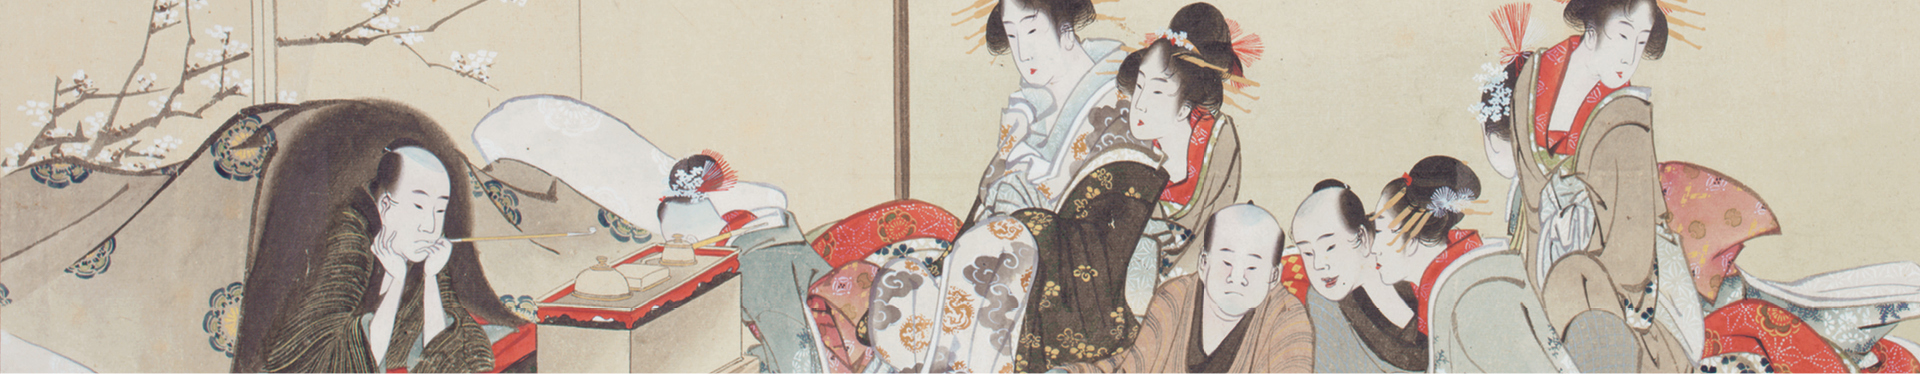 japanese-art-banner-NEW2_32_1_20170215120955.jpg